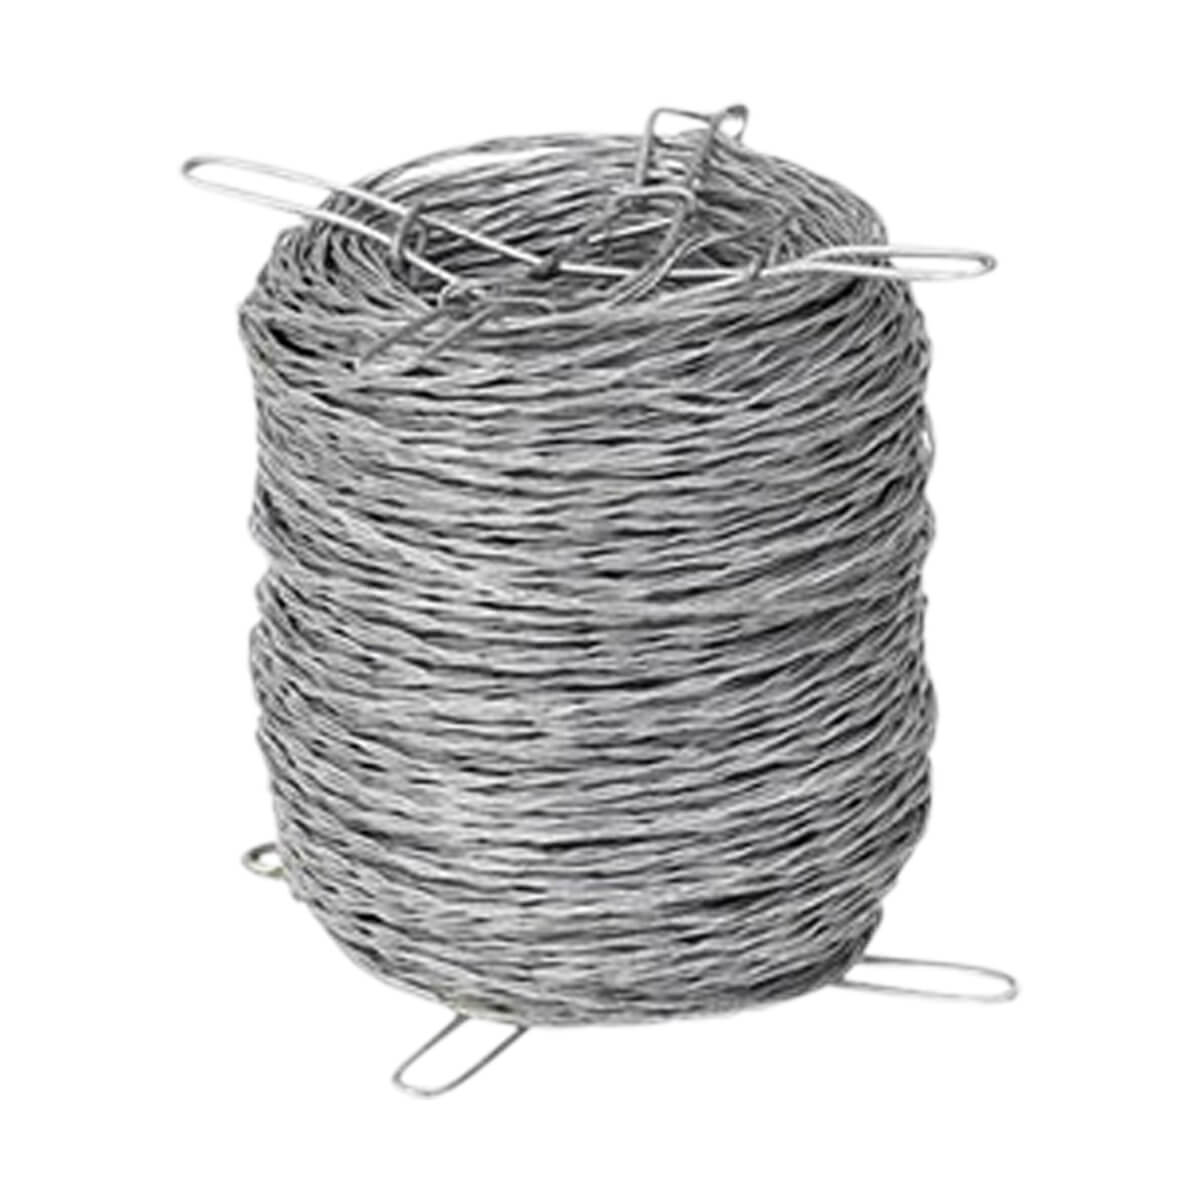 2-Strand Barbless Wire